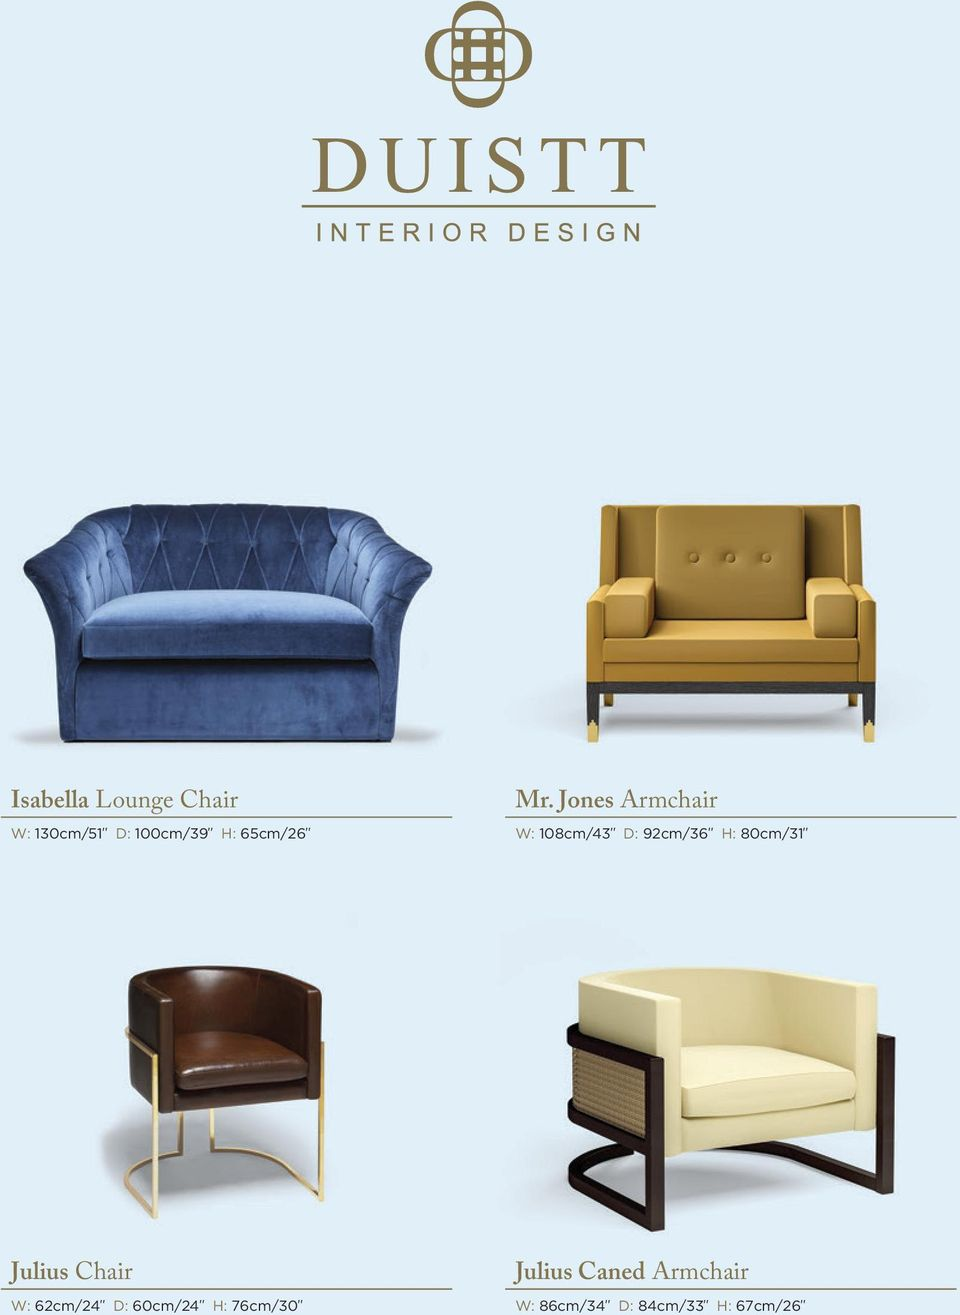 Jones Armchair W: 108cm/43 D: 92cm/36 H: 80cm/31